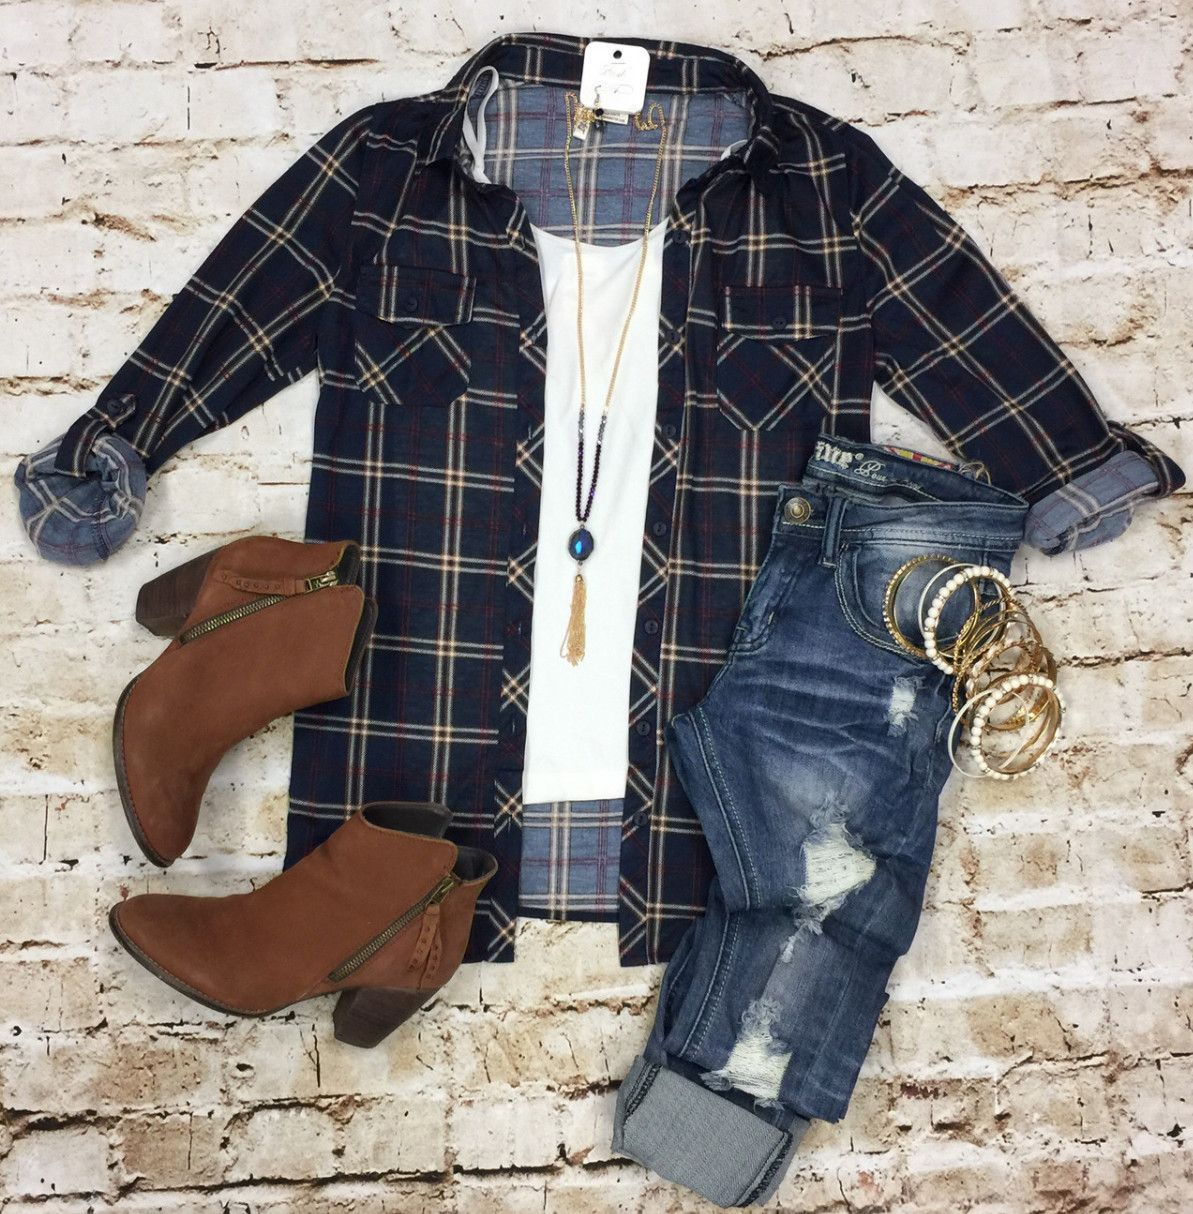 Flannel and denim jacket outfit  Penny Plaid Flannel Top NavyIvory from privityboutique  Fall